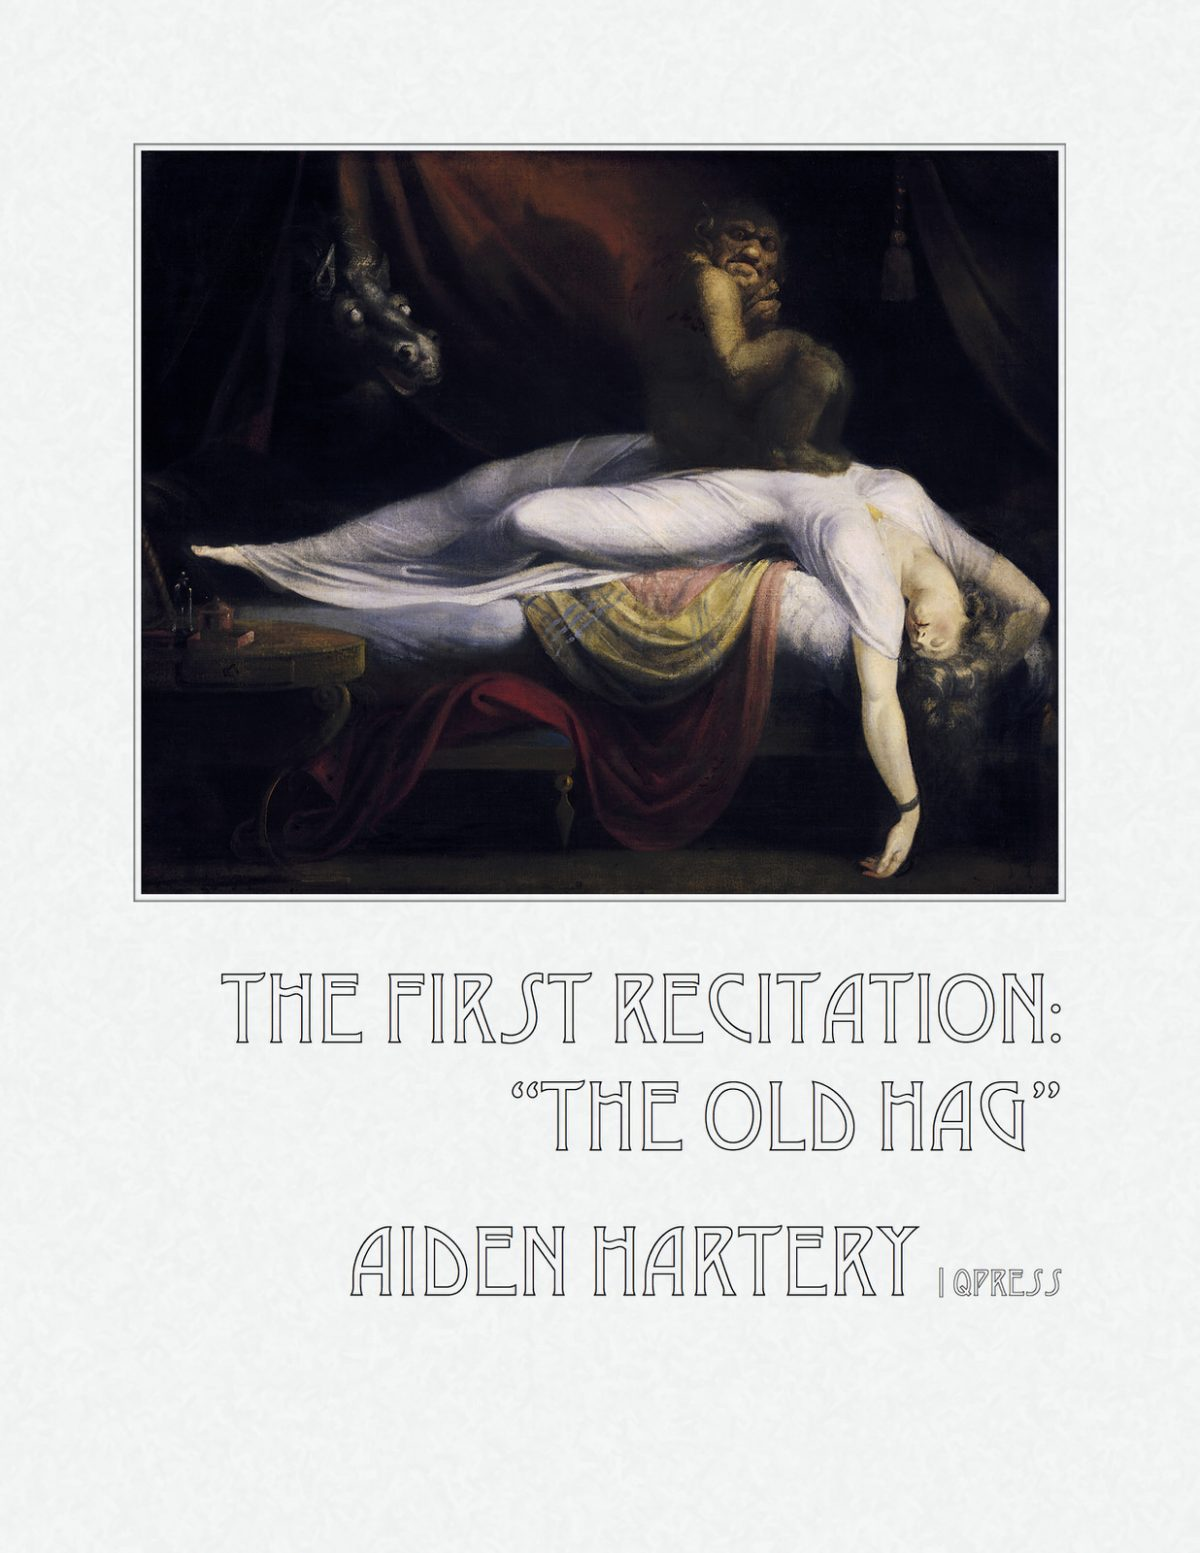 Hartery, First Recitation, the old Hag